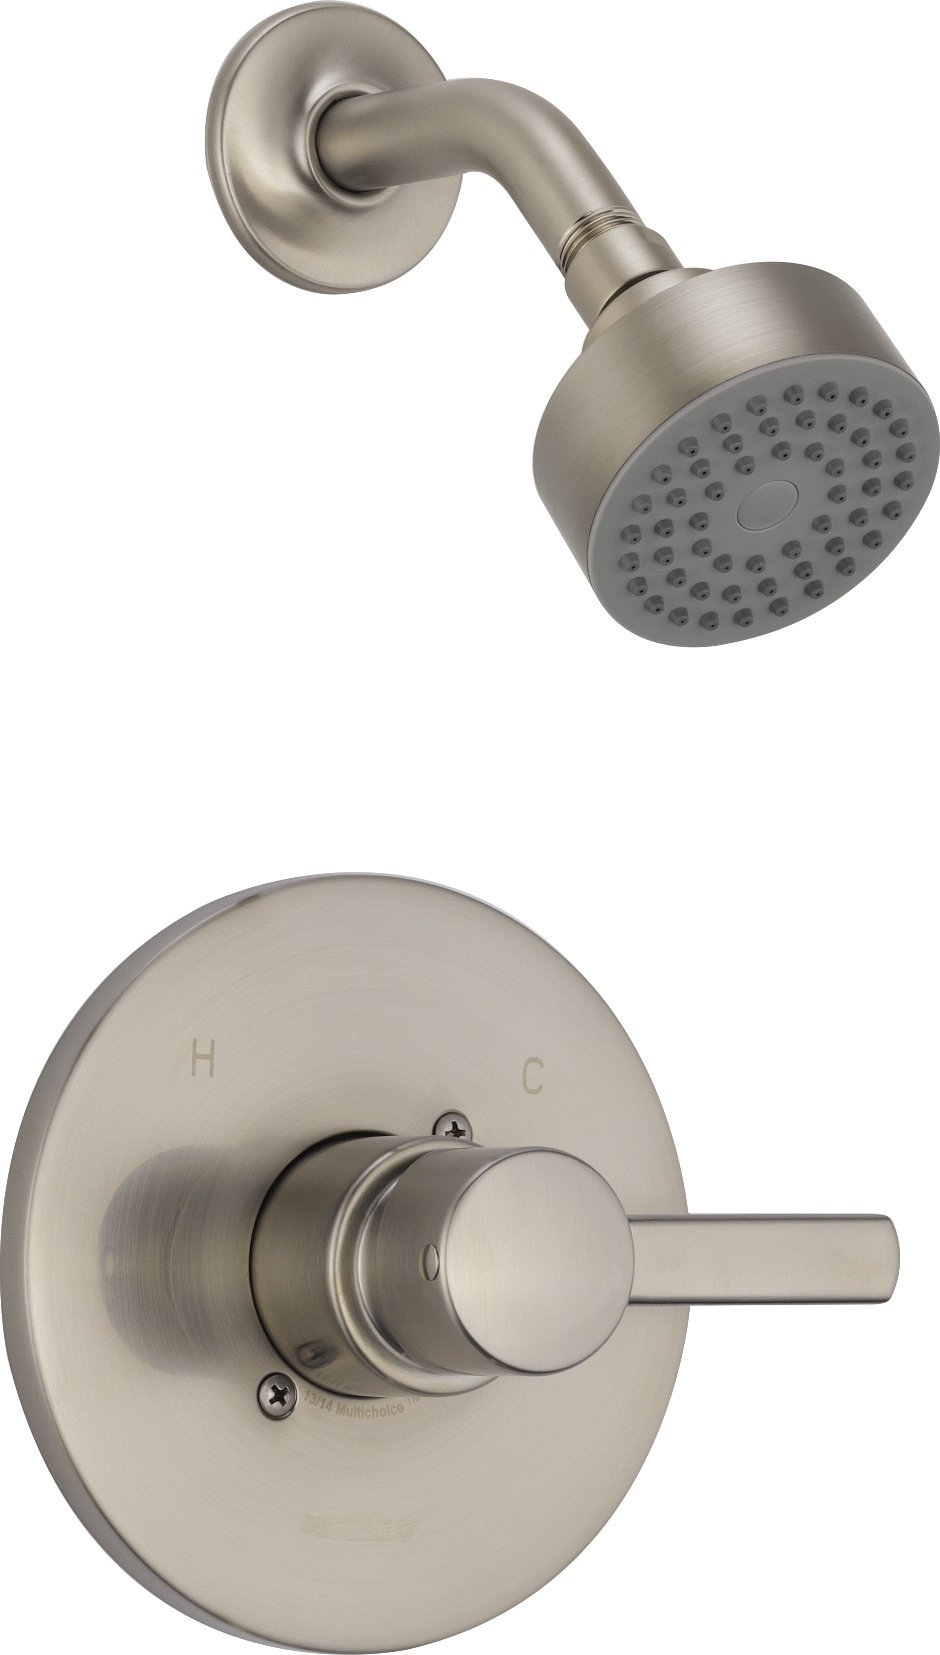 Delta Faucet PTT188782-BN Peerless Apex, Shower Only Trim Kit, Brushed Nickel (Valve sold separately) by DELTA FAUCET